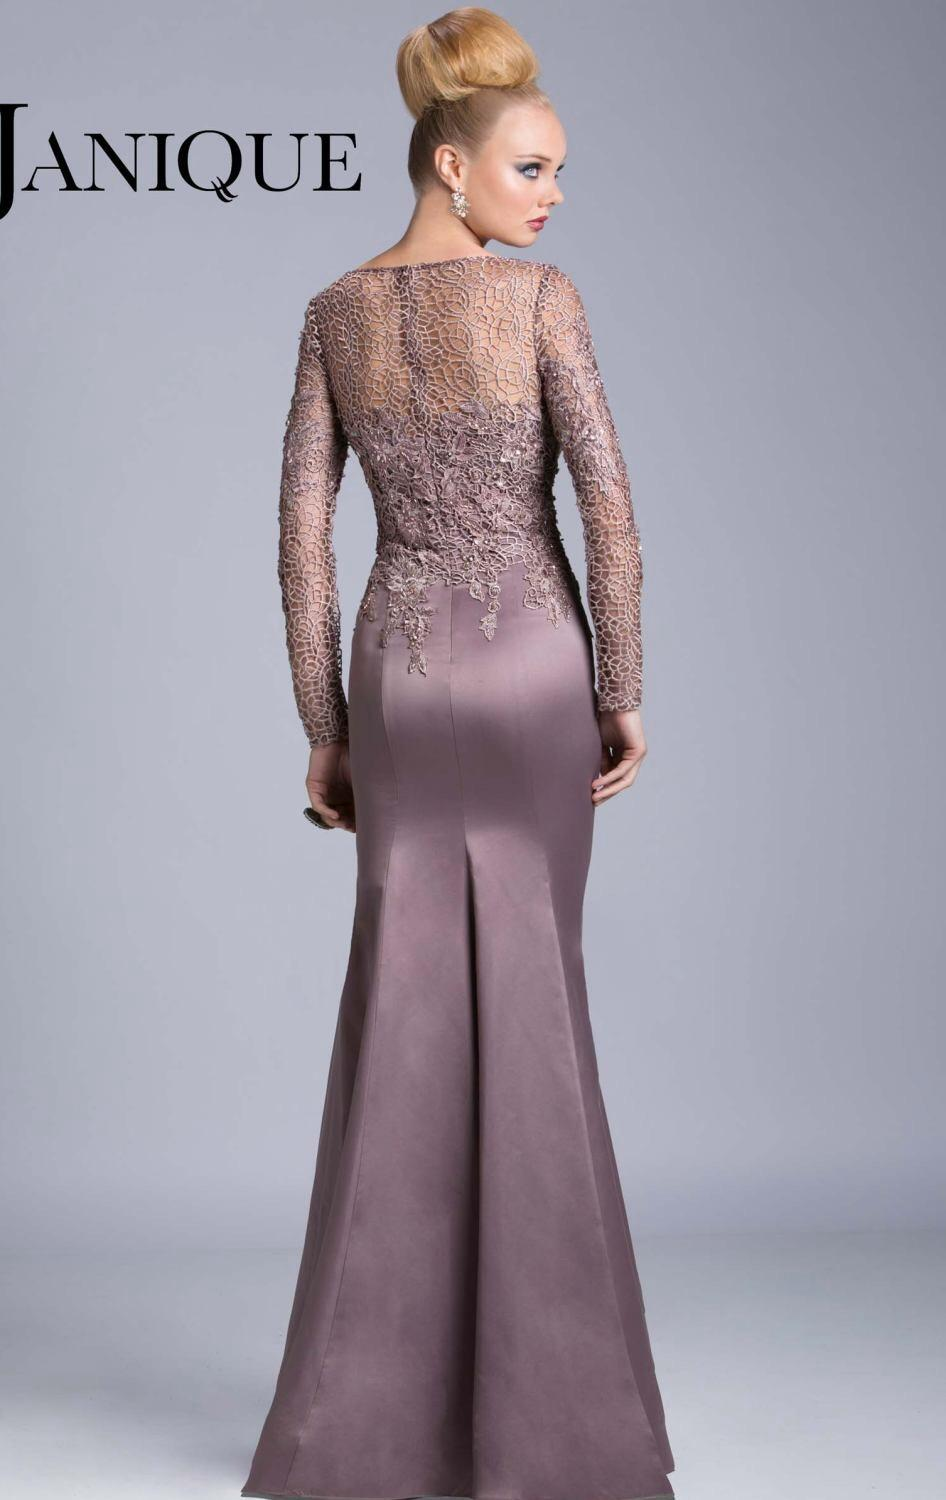 046ebdbd80ca9 Mauve Fitted Lace Backless Prom Dress 58662 - raveitsafe